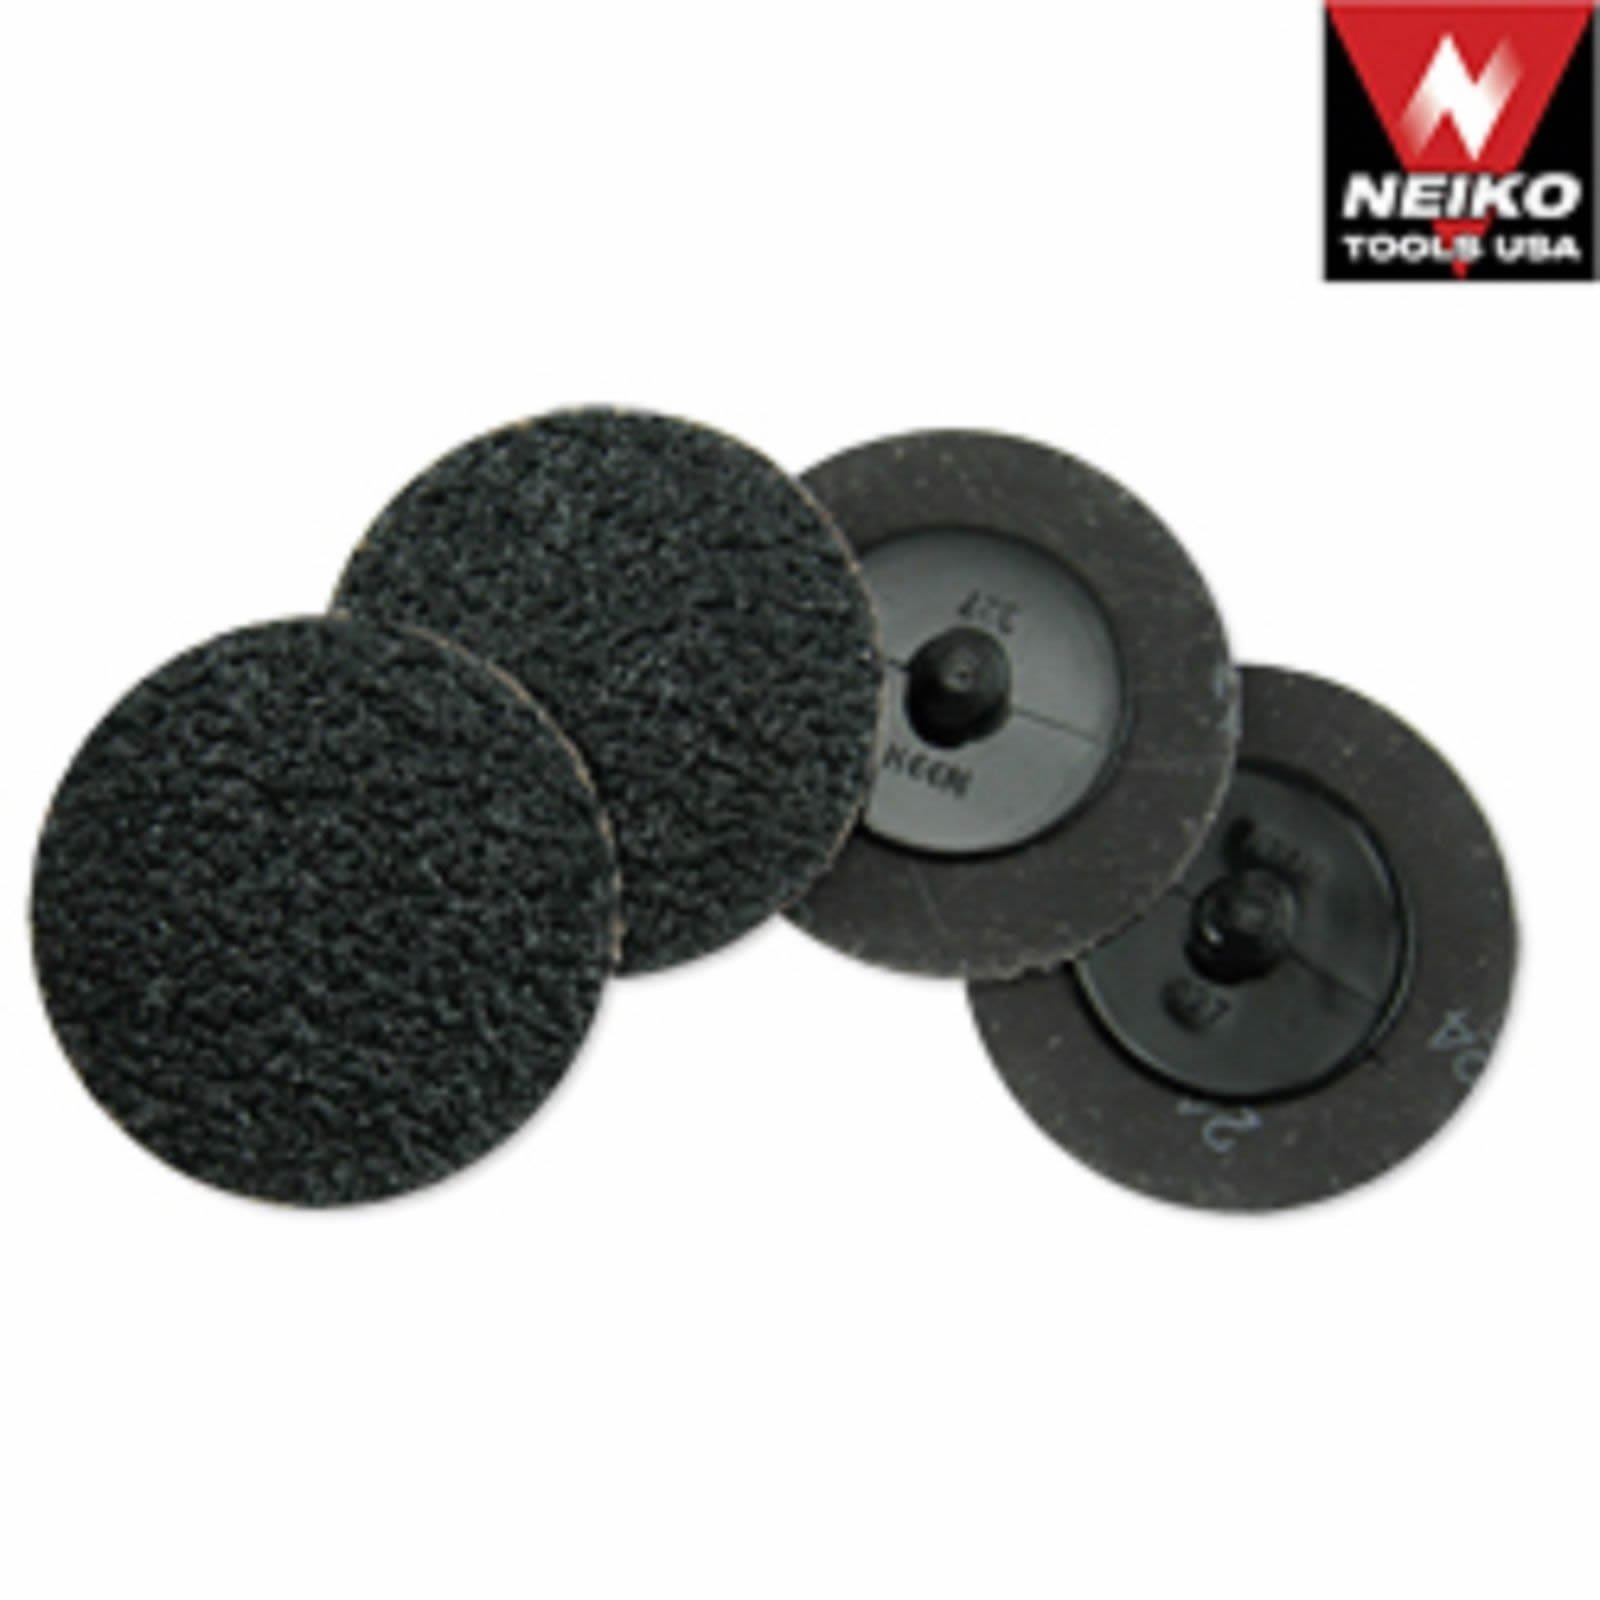 Neiko 50 Silicon Carbide Sanding Discs 3'' 24 Grit Grinding Sandpaper Wheel by Neiko